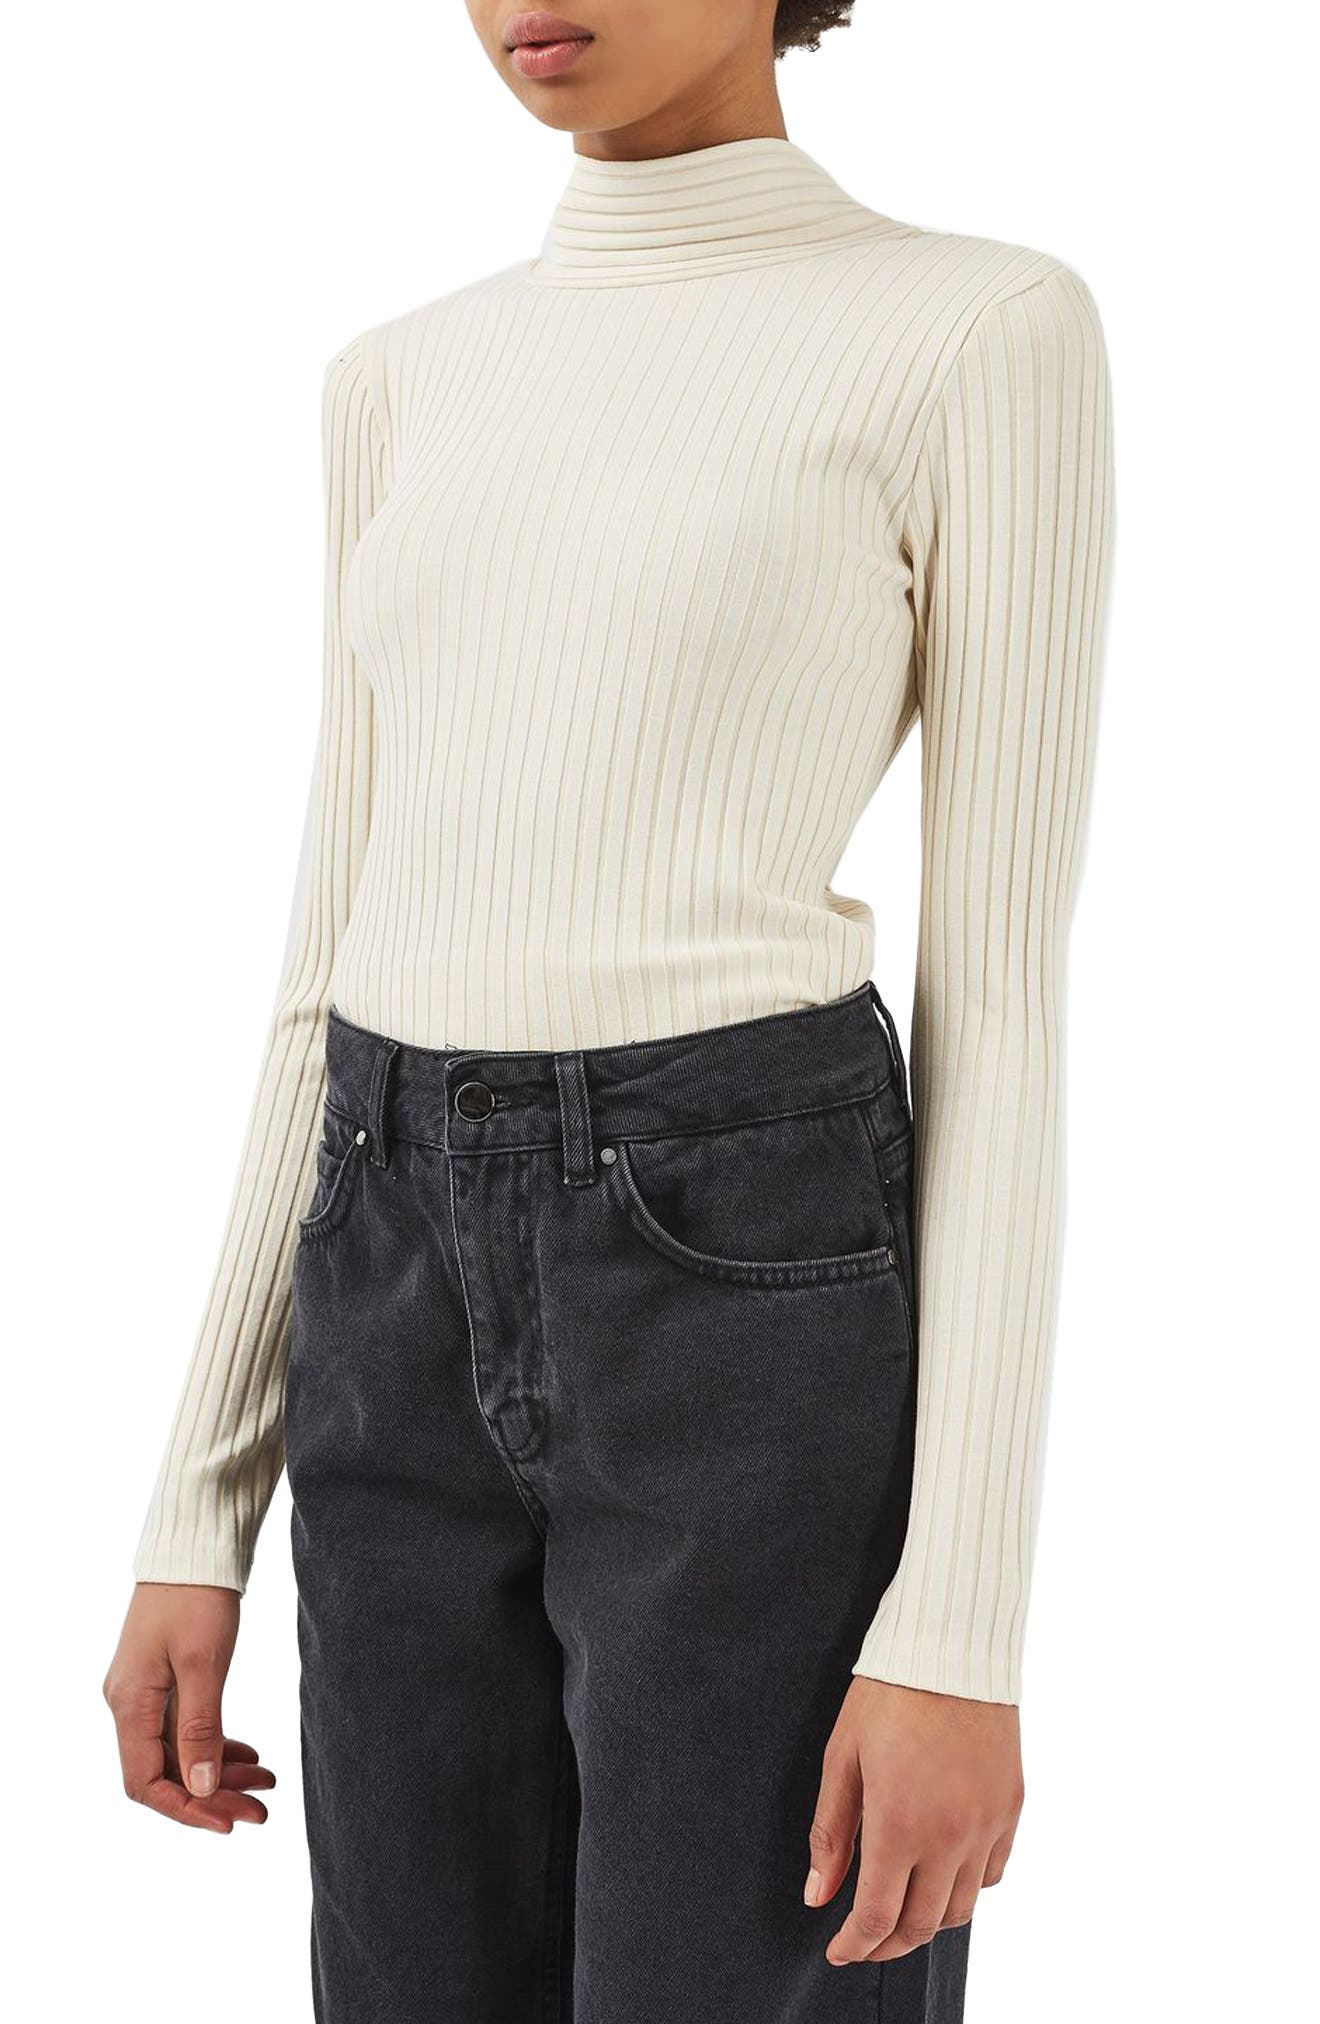 Alternate Image 1 Selected - Topshop Boutique Tie Back Sweater